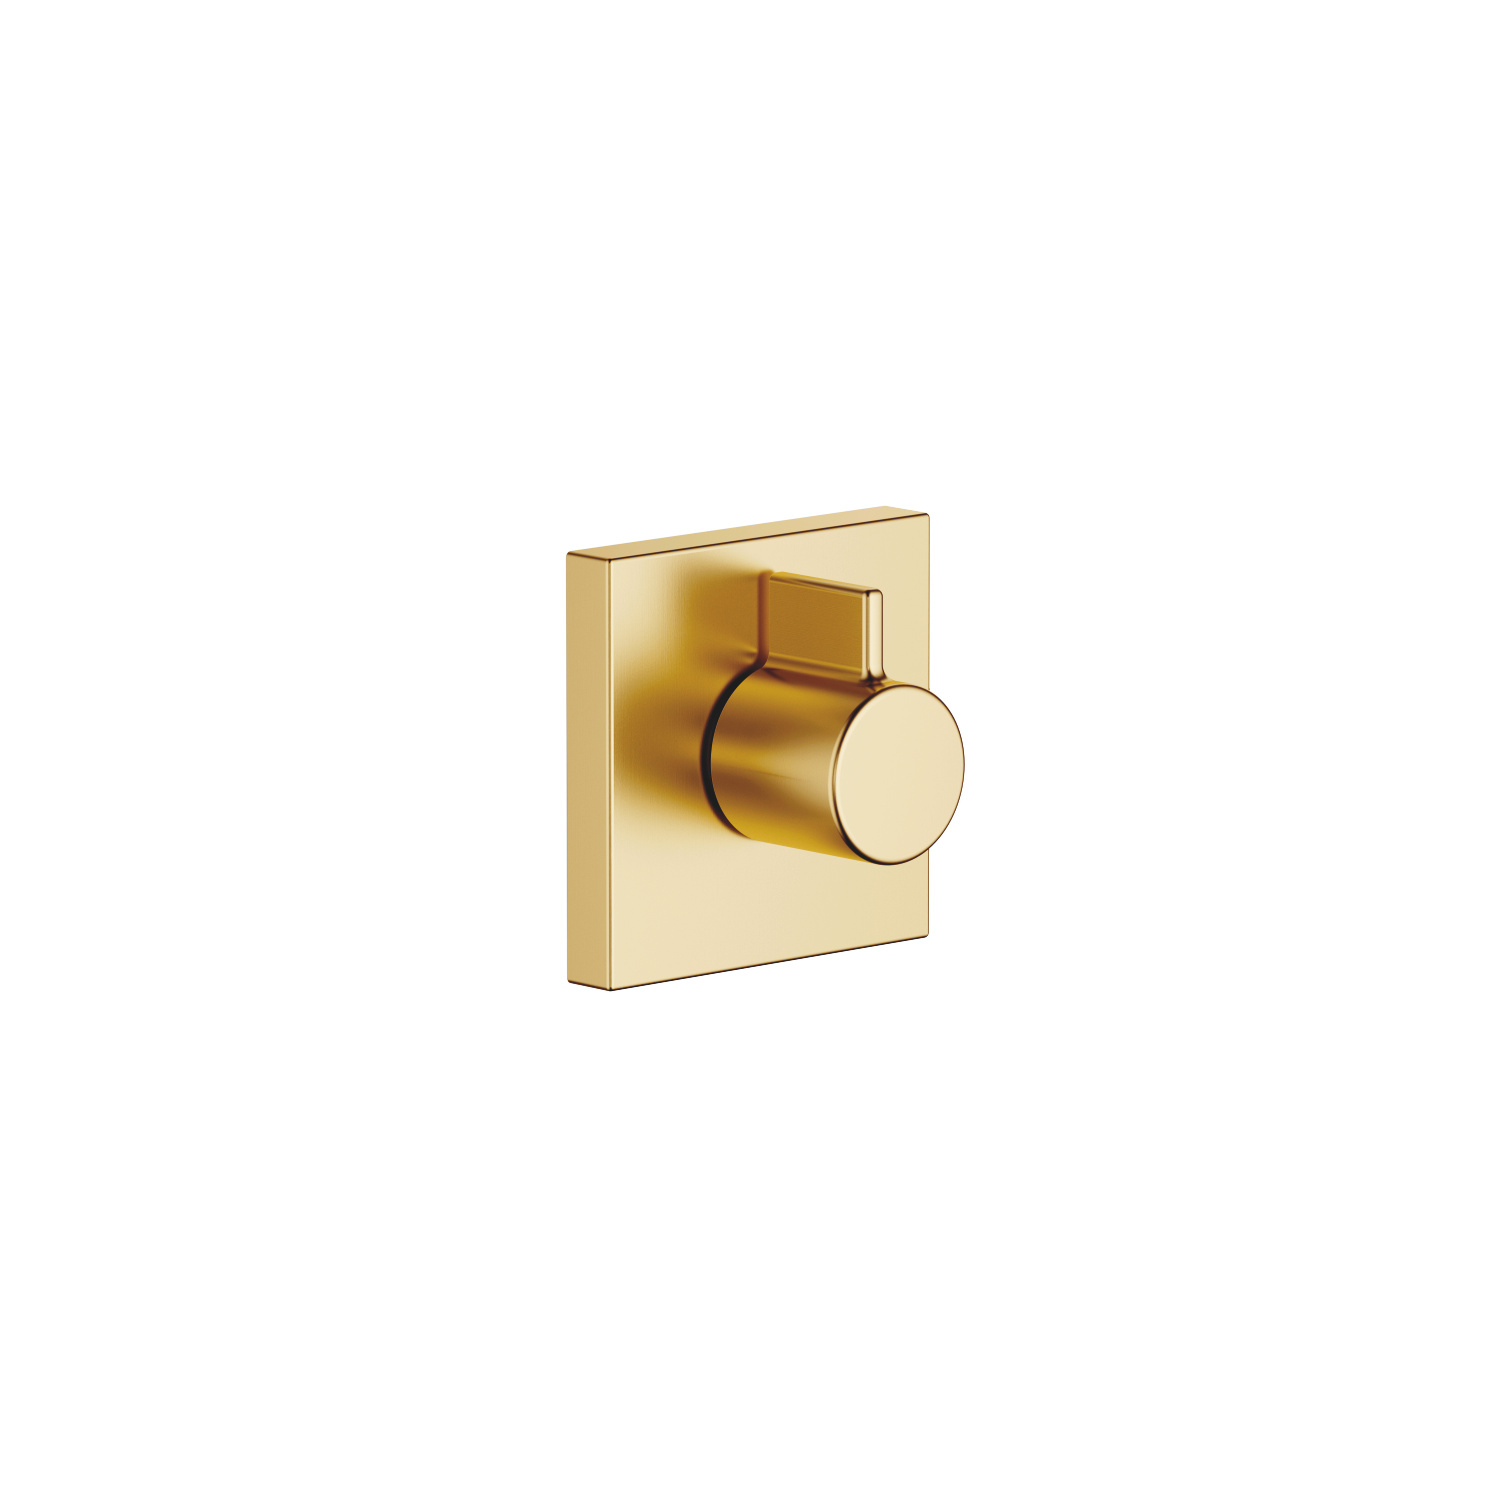 "Wall valve anti-clockwise closing 3/4"" - brushed Durabrass"